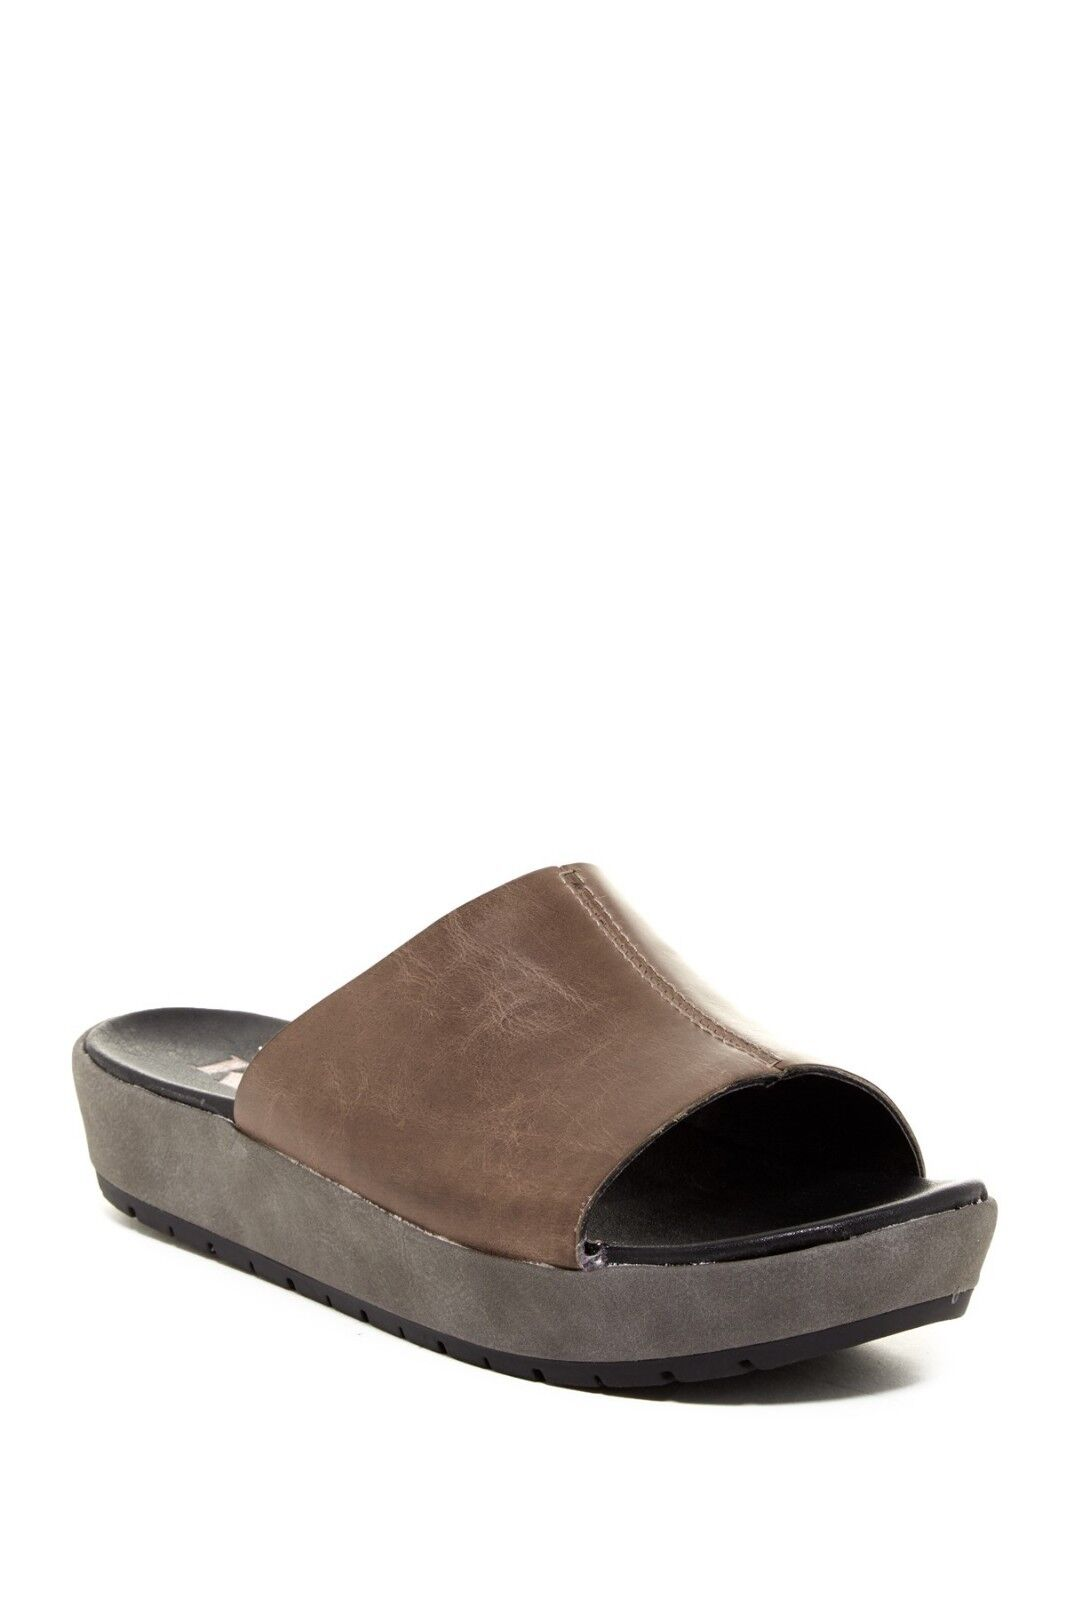 NEW KORKS Mikah Platform Leather Slide Sandal, Grey, Size Women 6.5,  85